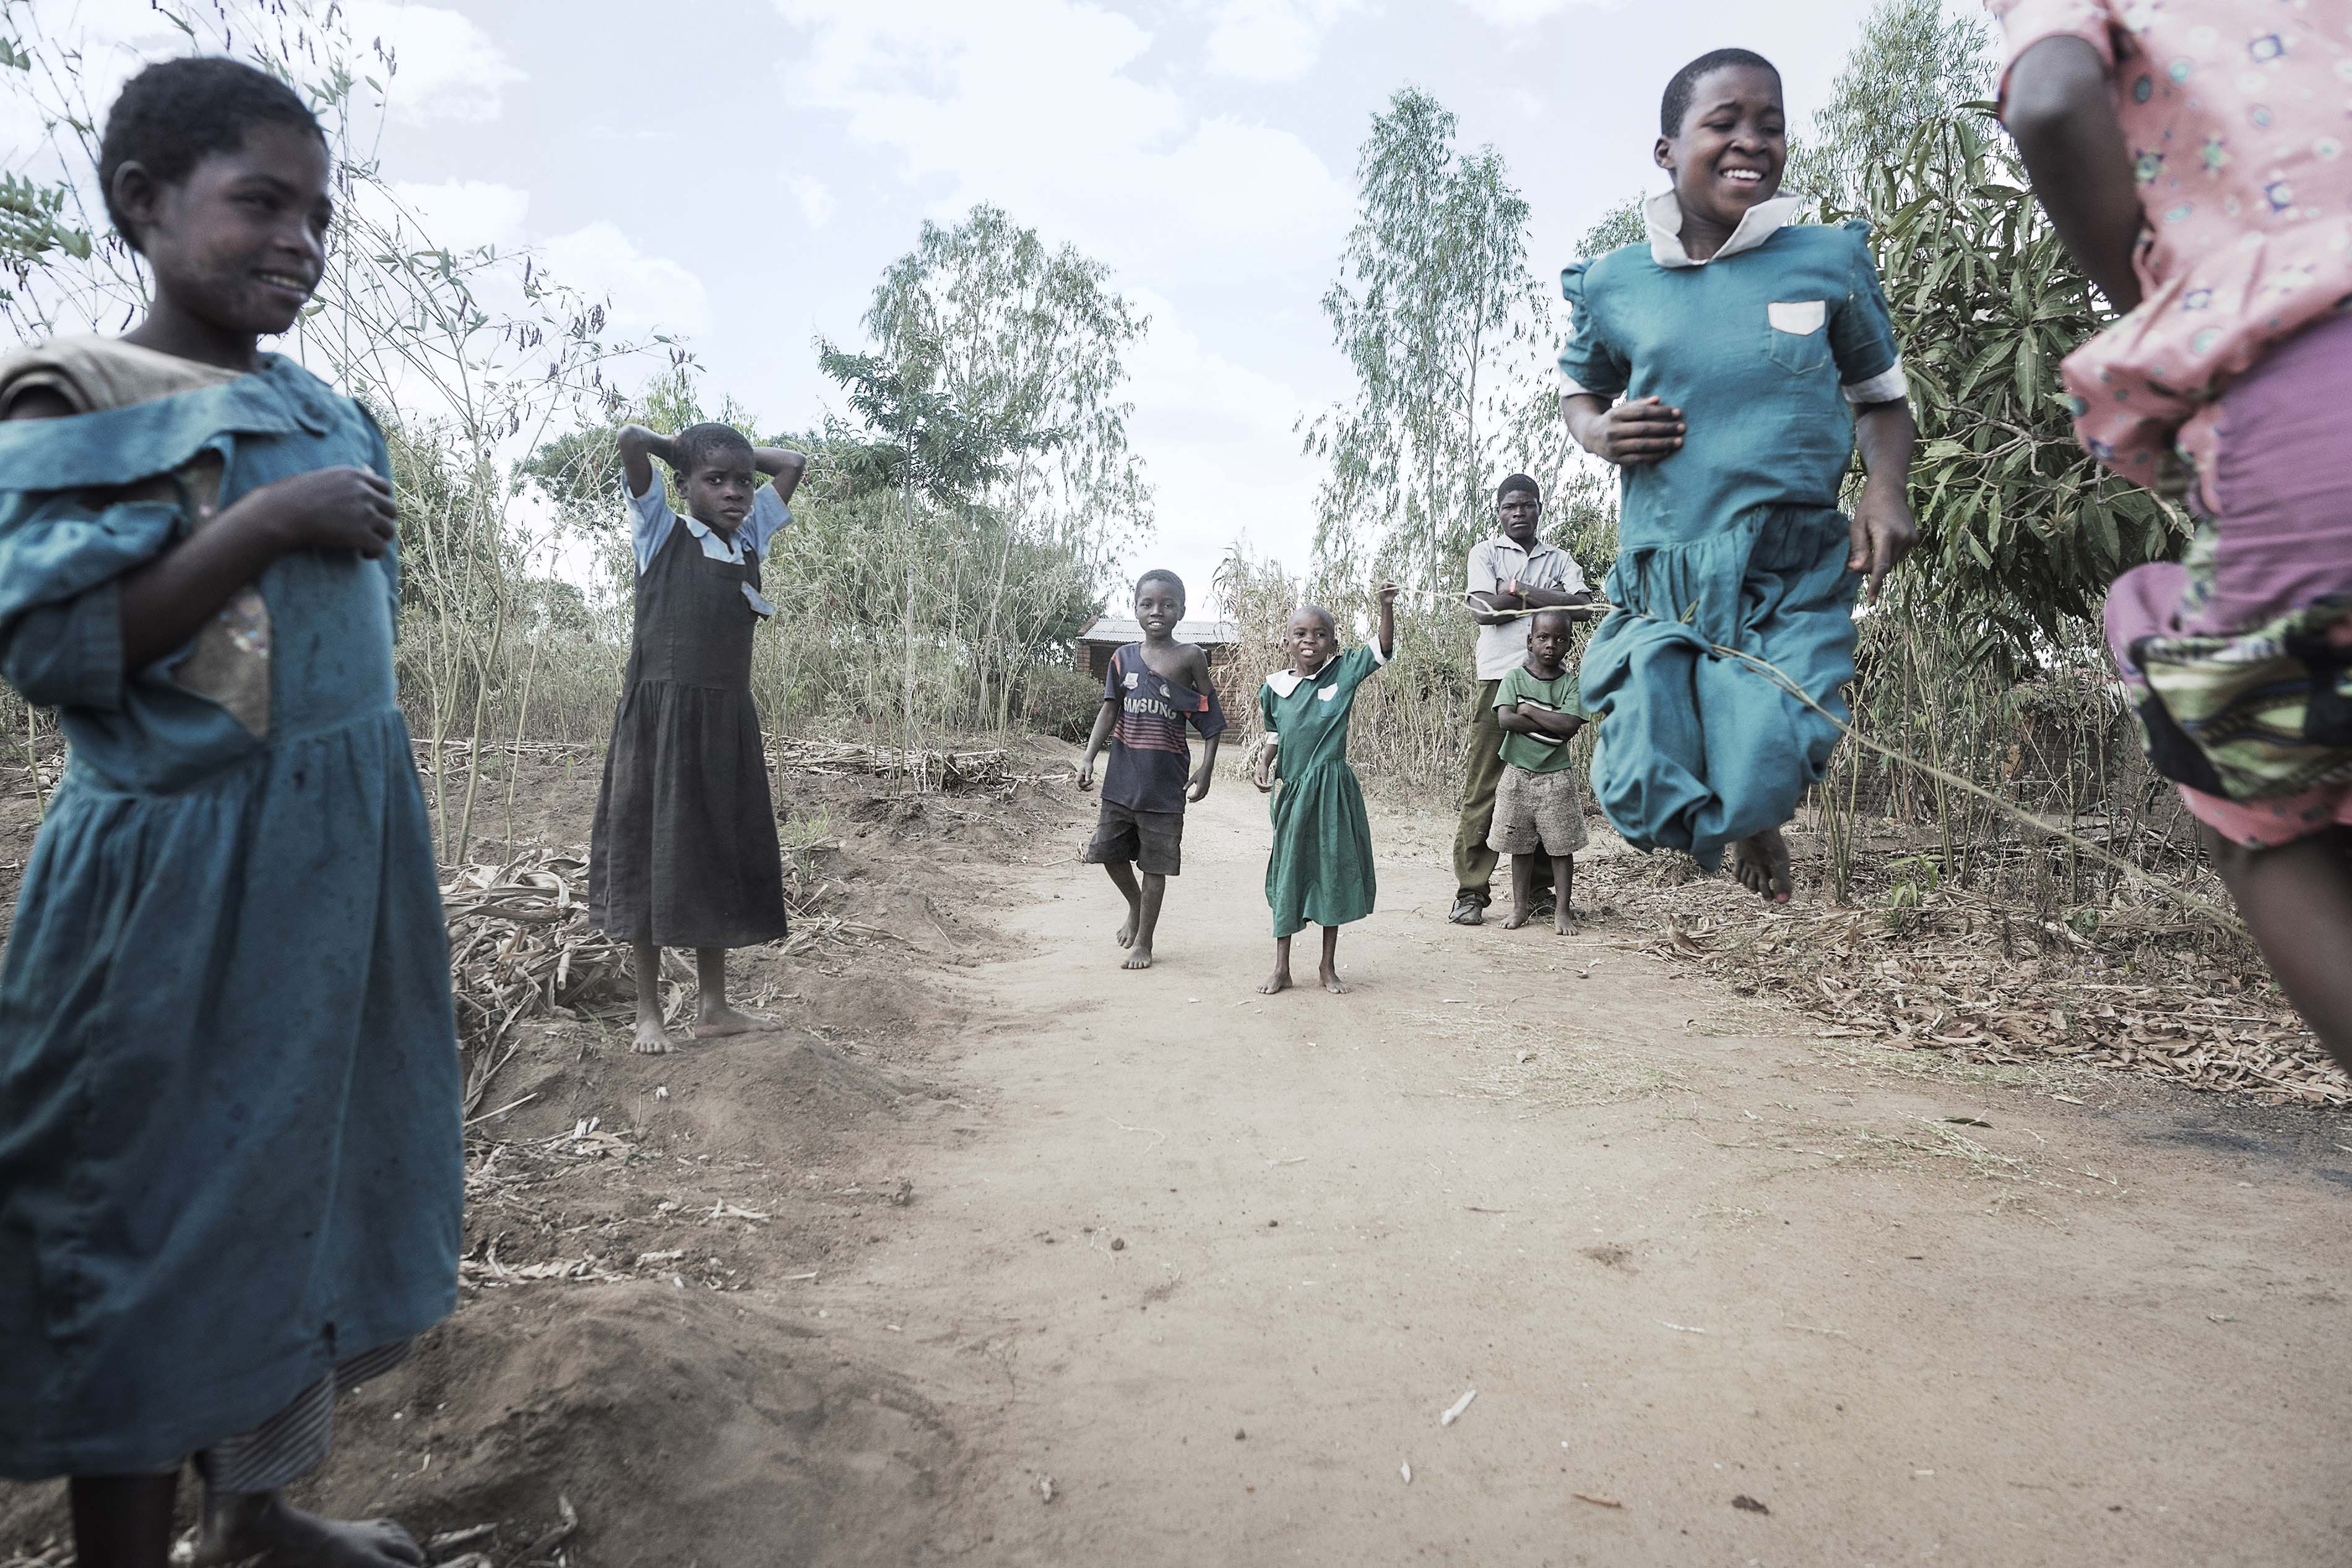 Gloria Chipasula, 11 years old MSF's HIV and TB positive patient stands in in the middle of the road (green dressed) as she plays with her young relatives and village's friends.